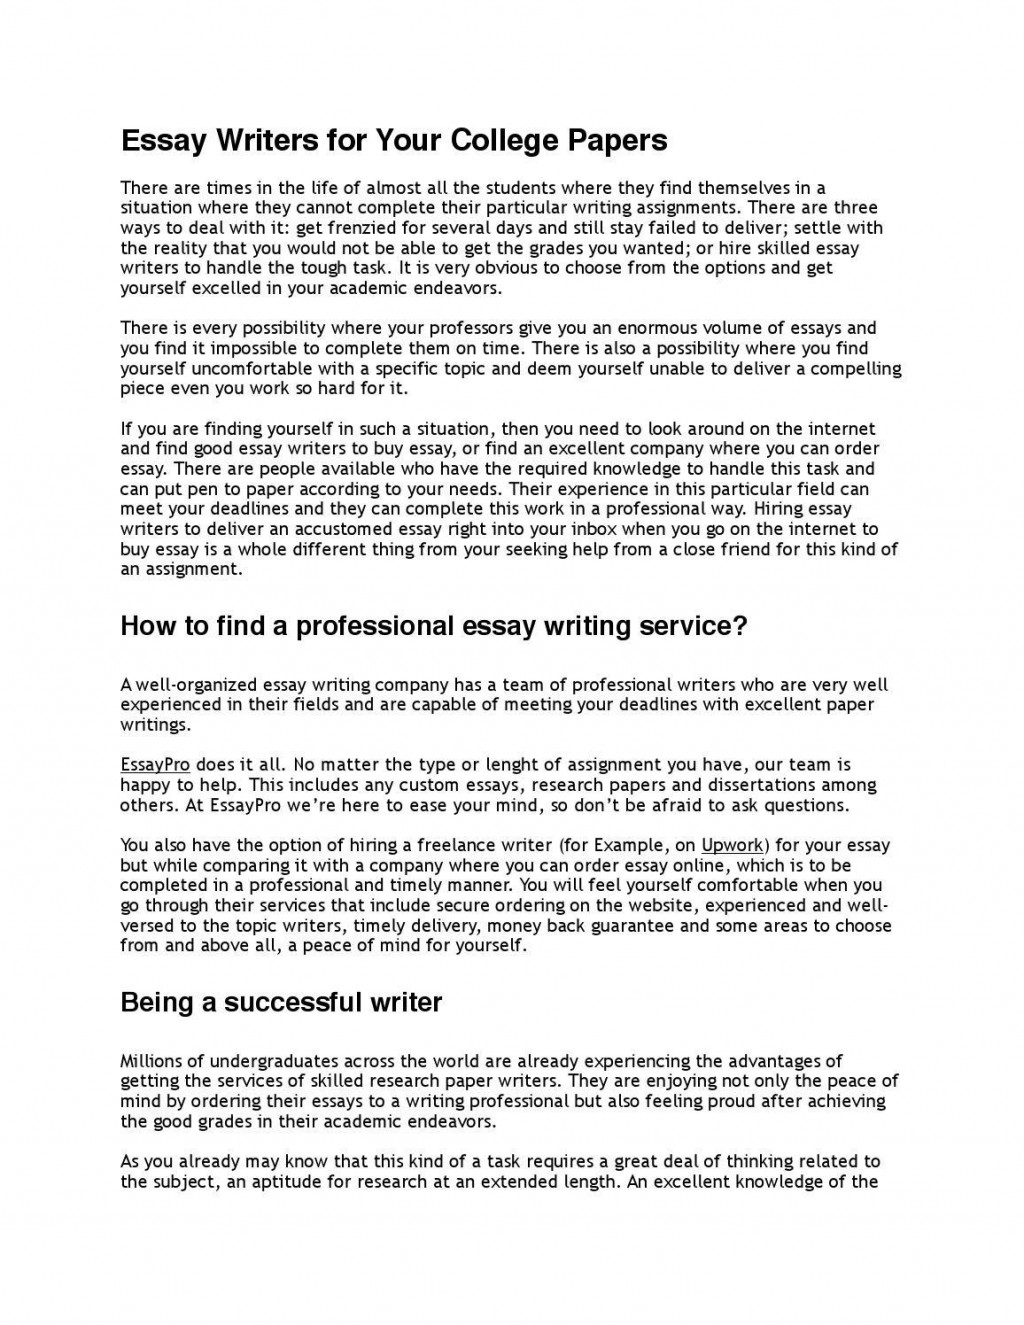 006 Essay Writer Com Page 1fit11562c1496ssl1 Outstanding My Writer.com Pro Writing Reviews Comparative Large